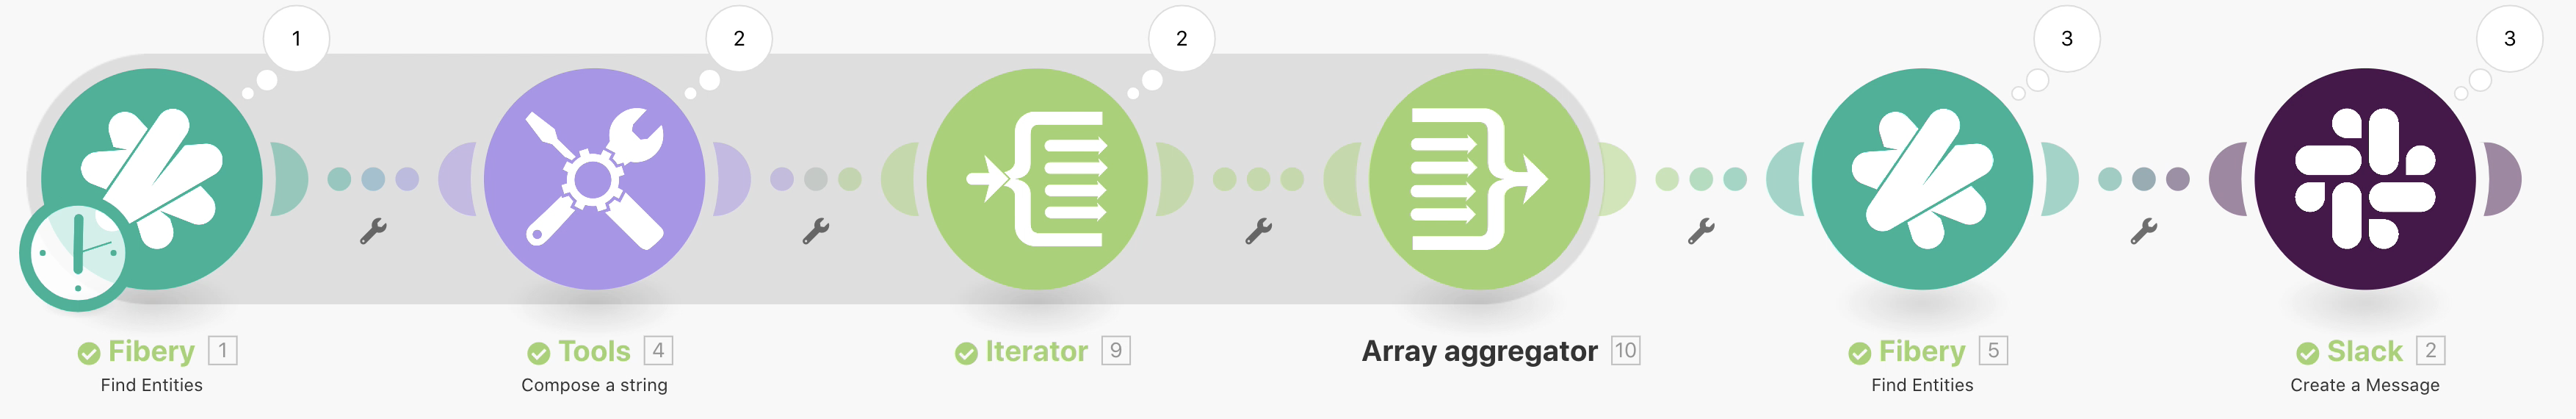 Integromat modules: add Array aggregator to combine multiple bundles into a single one.